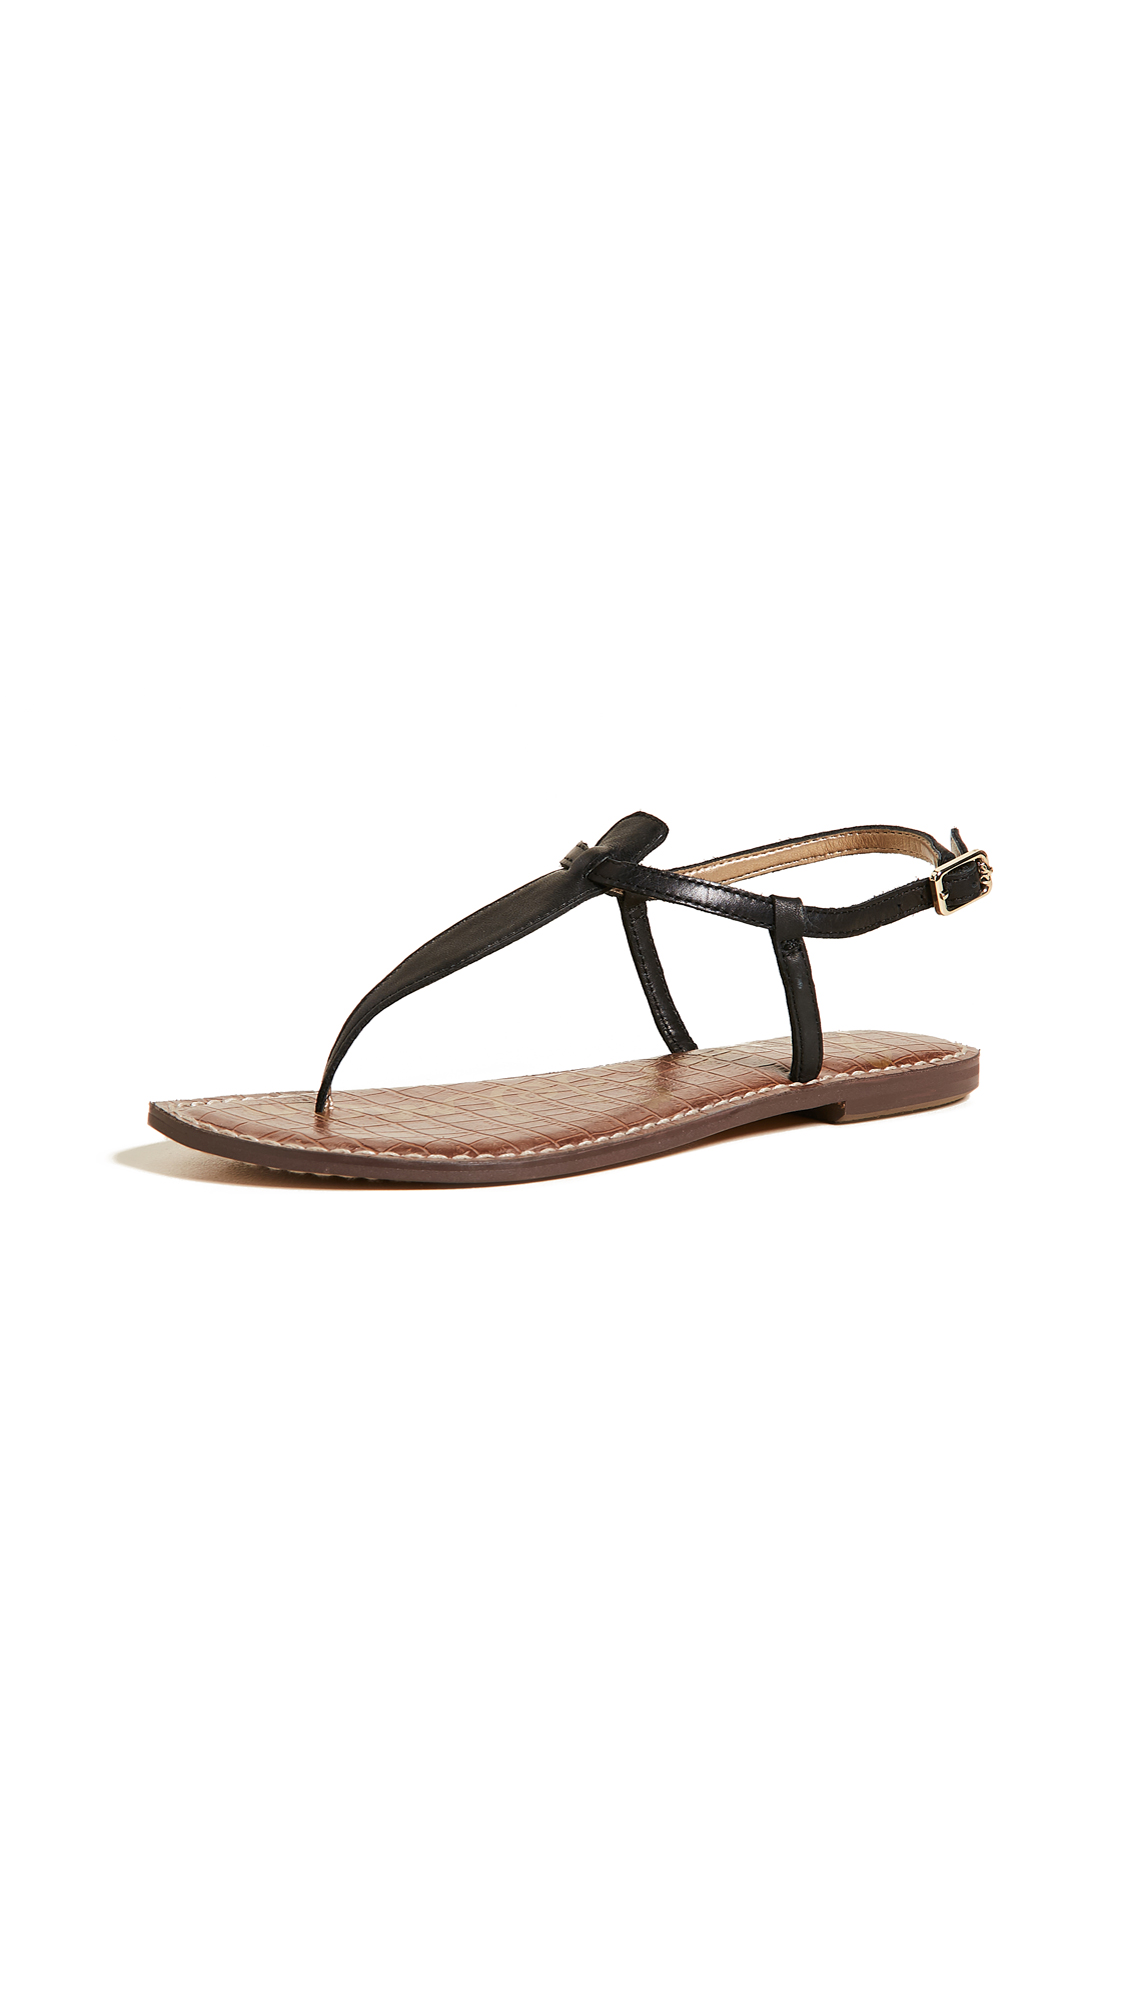 Sam Edelman Gigi Flat Sandals - Black